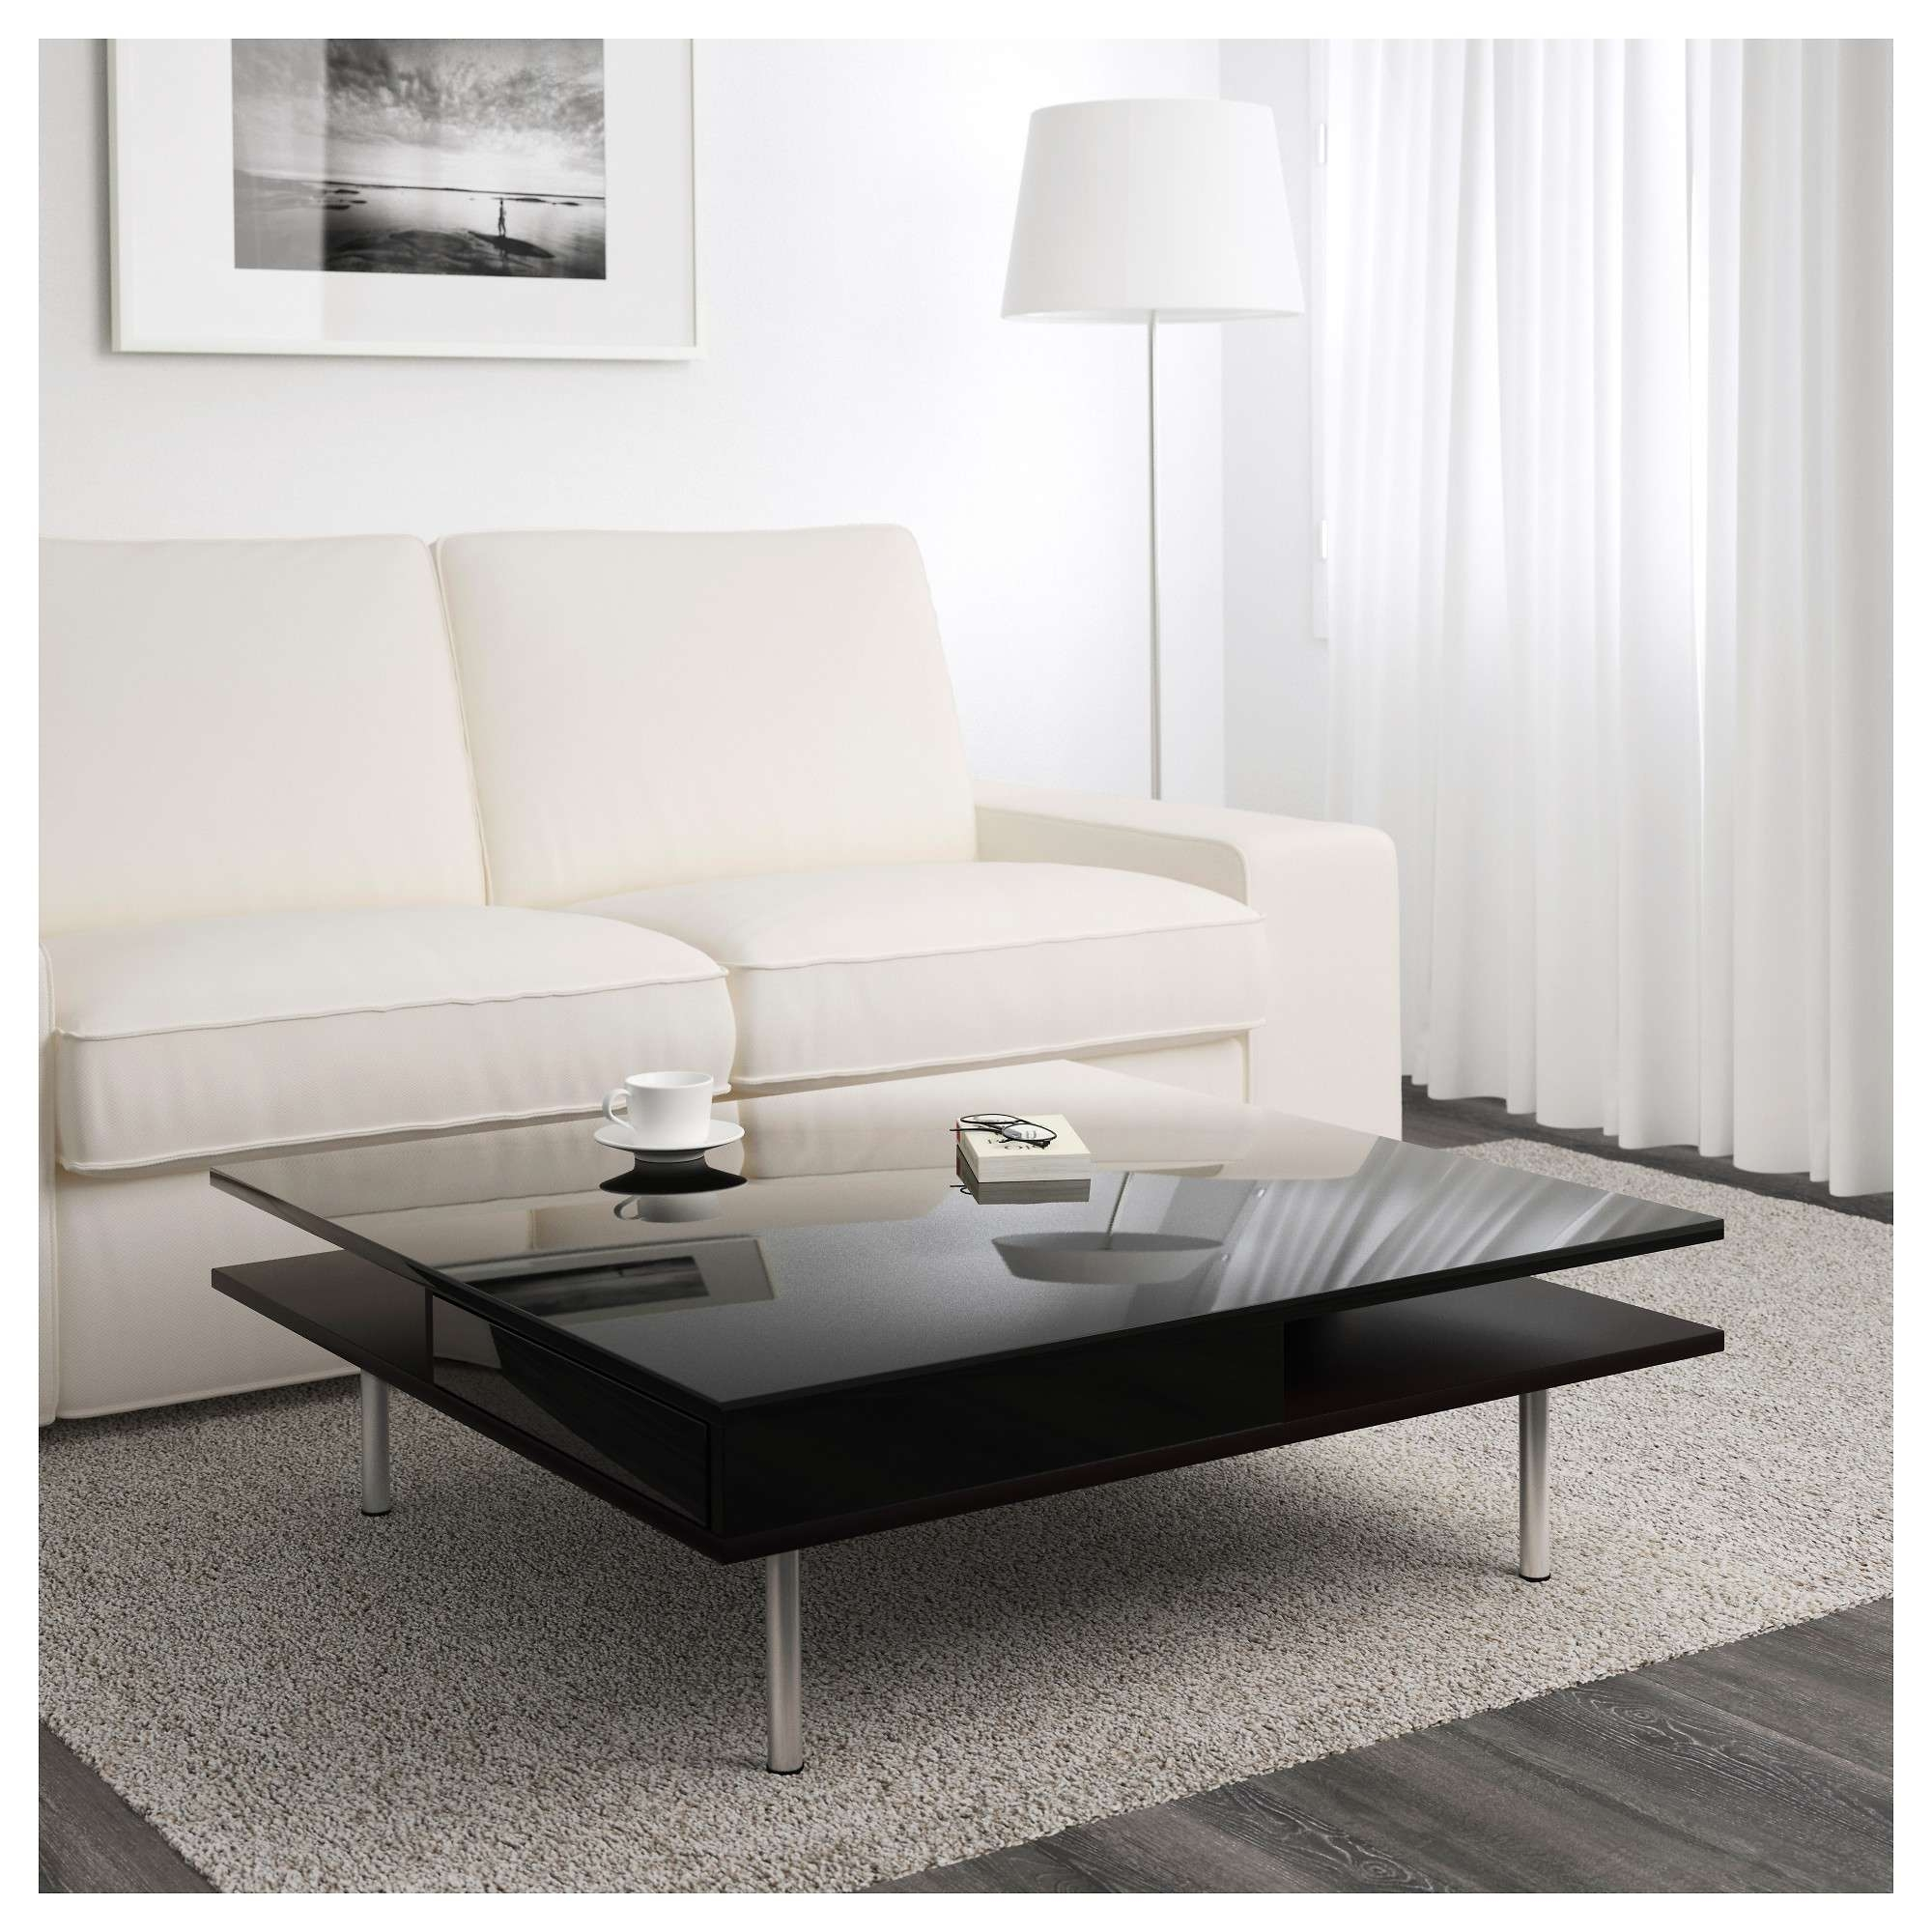 Well Known High Gloss Coffee Tables Within Tofteryd Coffee Table – High Gloss Black – Ikea (View 18 of 20)